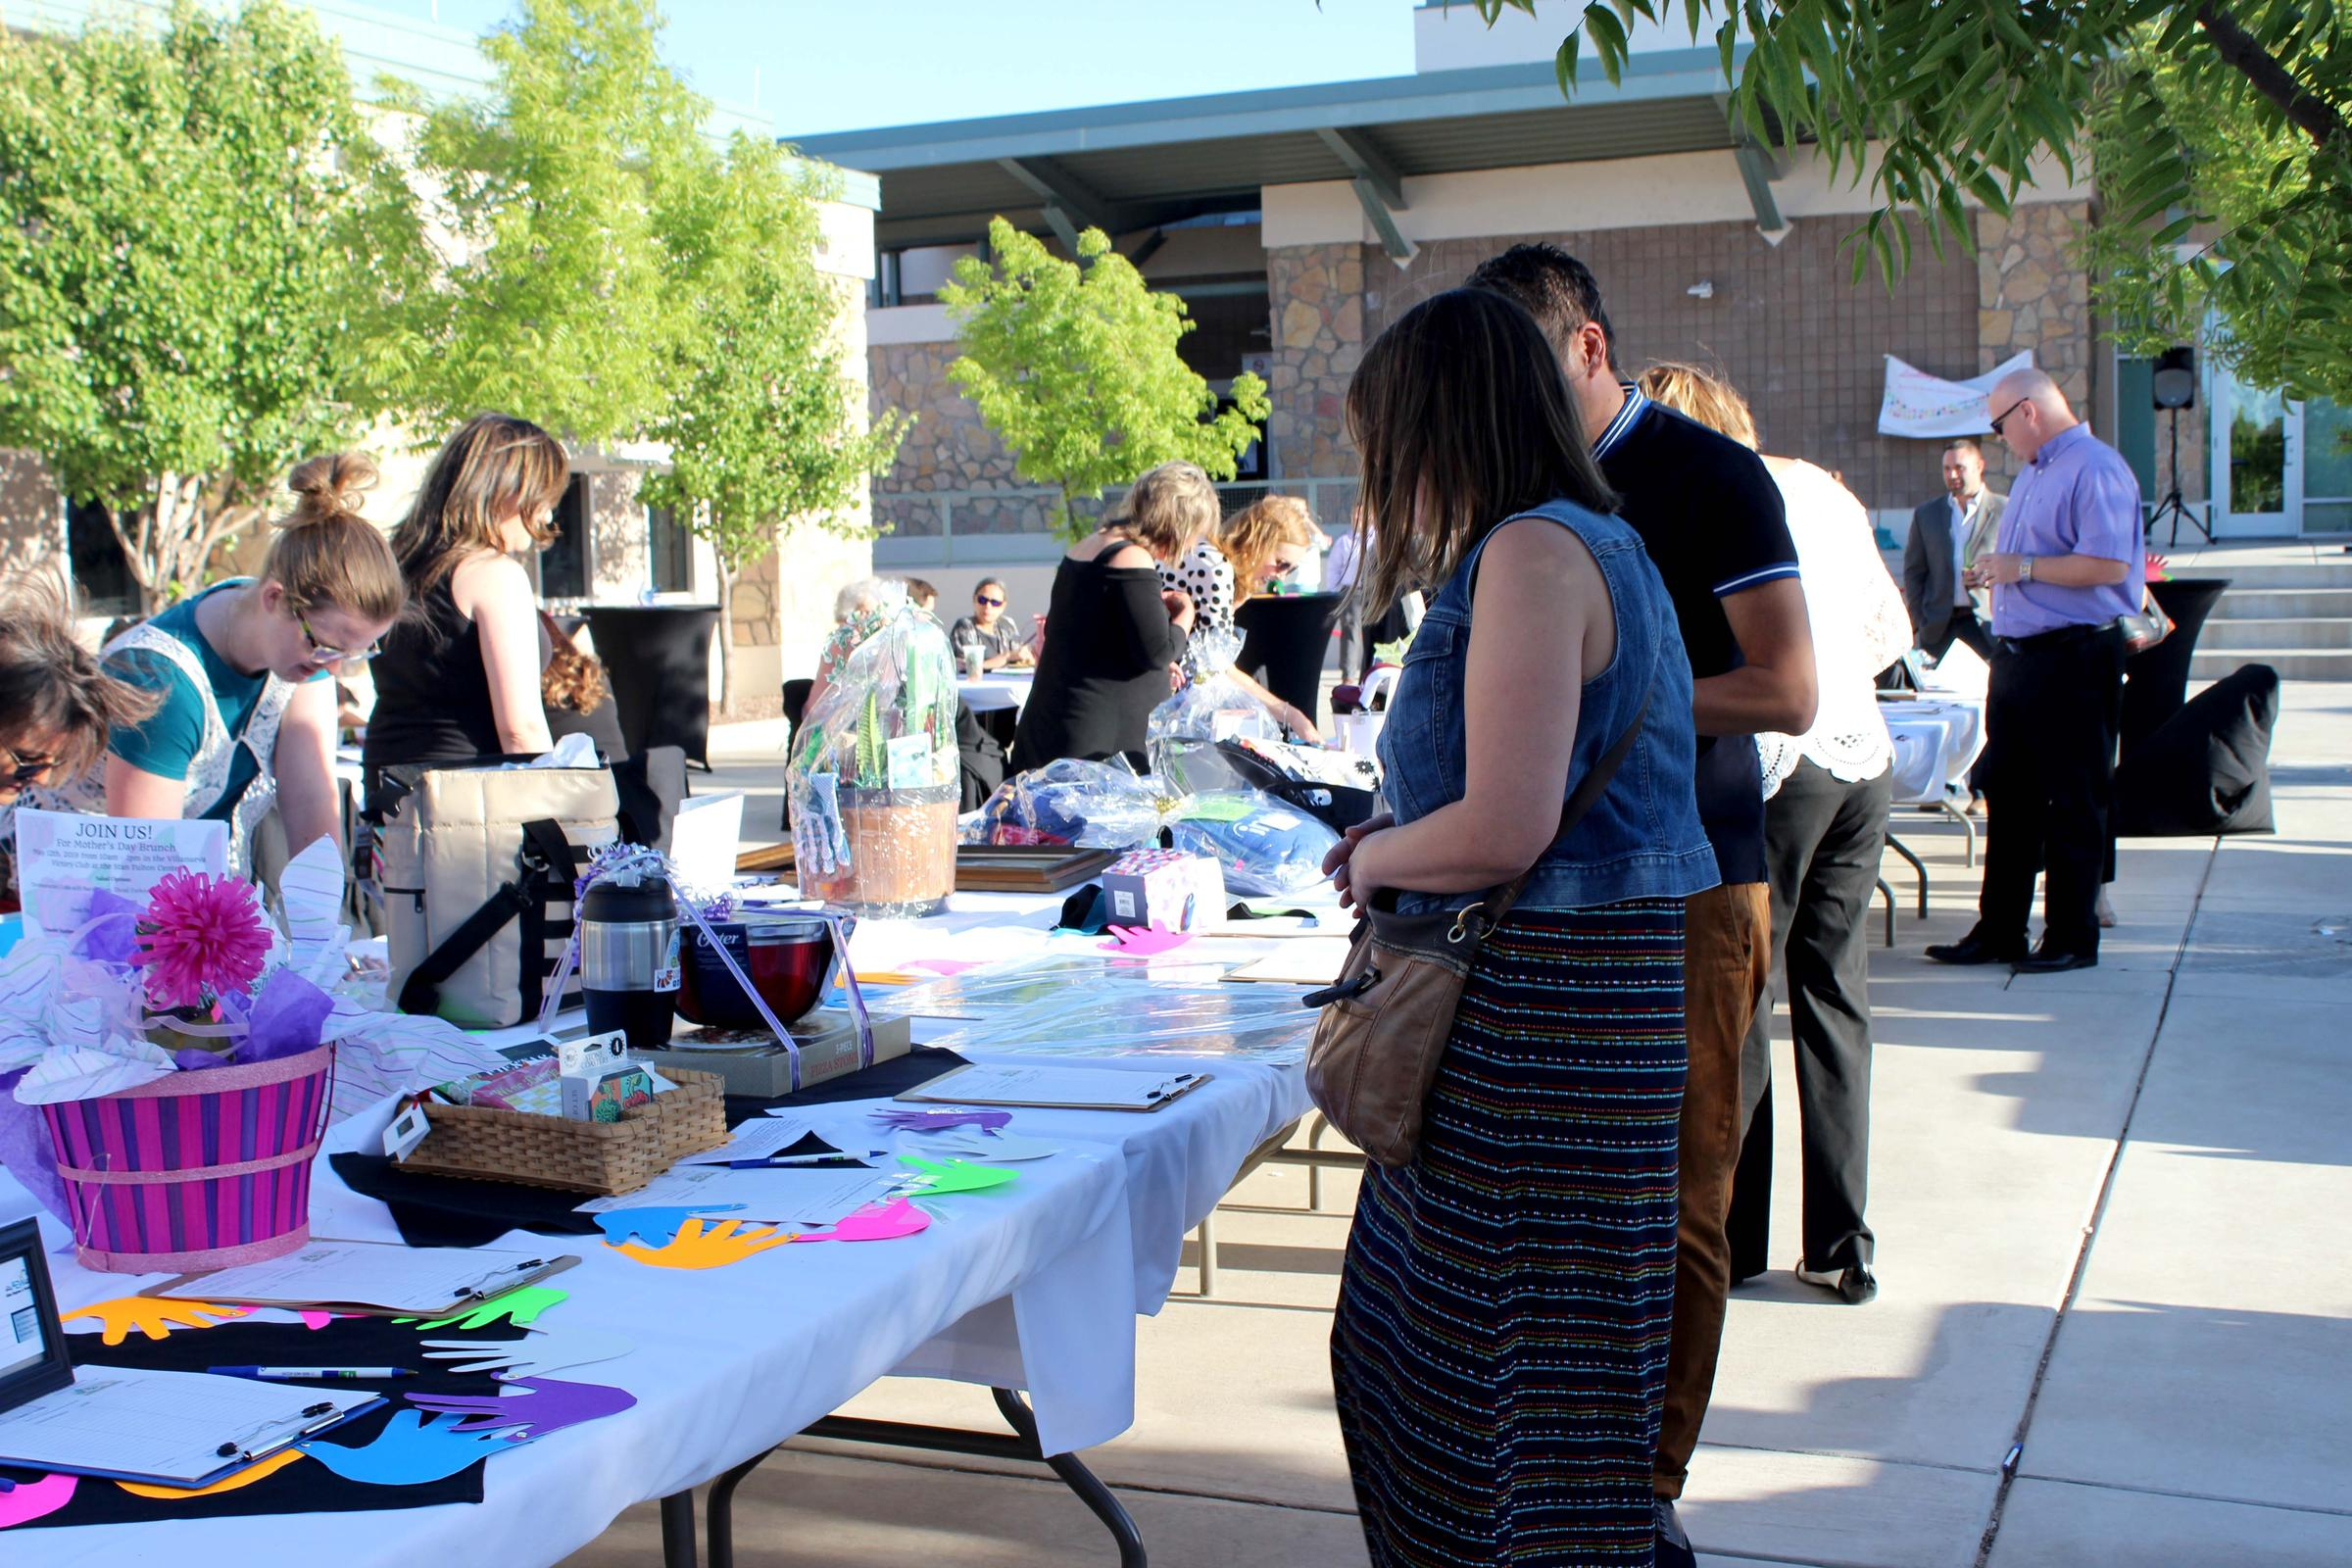 Event Raises $40,000 For Homeless Youth Of Las Cruces In Las Cruces Public School Calendar